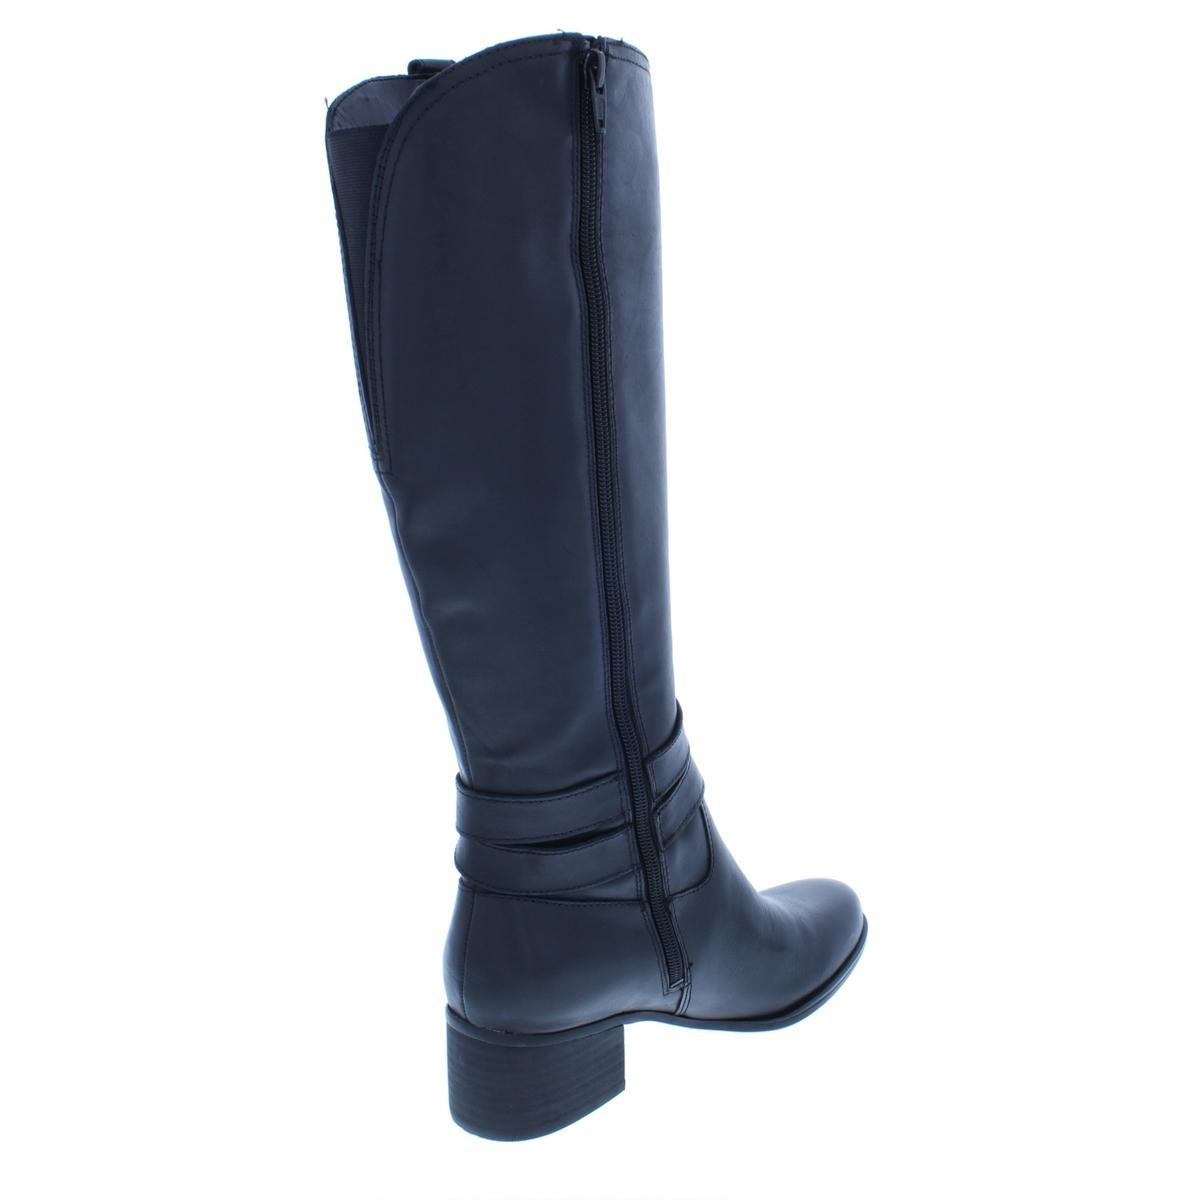 Naturalizer-Womens-Dev-Leather-Riding-Tall-Knee-High-Boots-Shoes-BHFO-4923